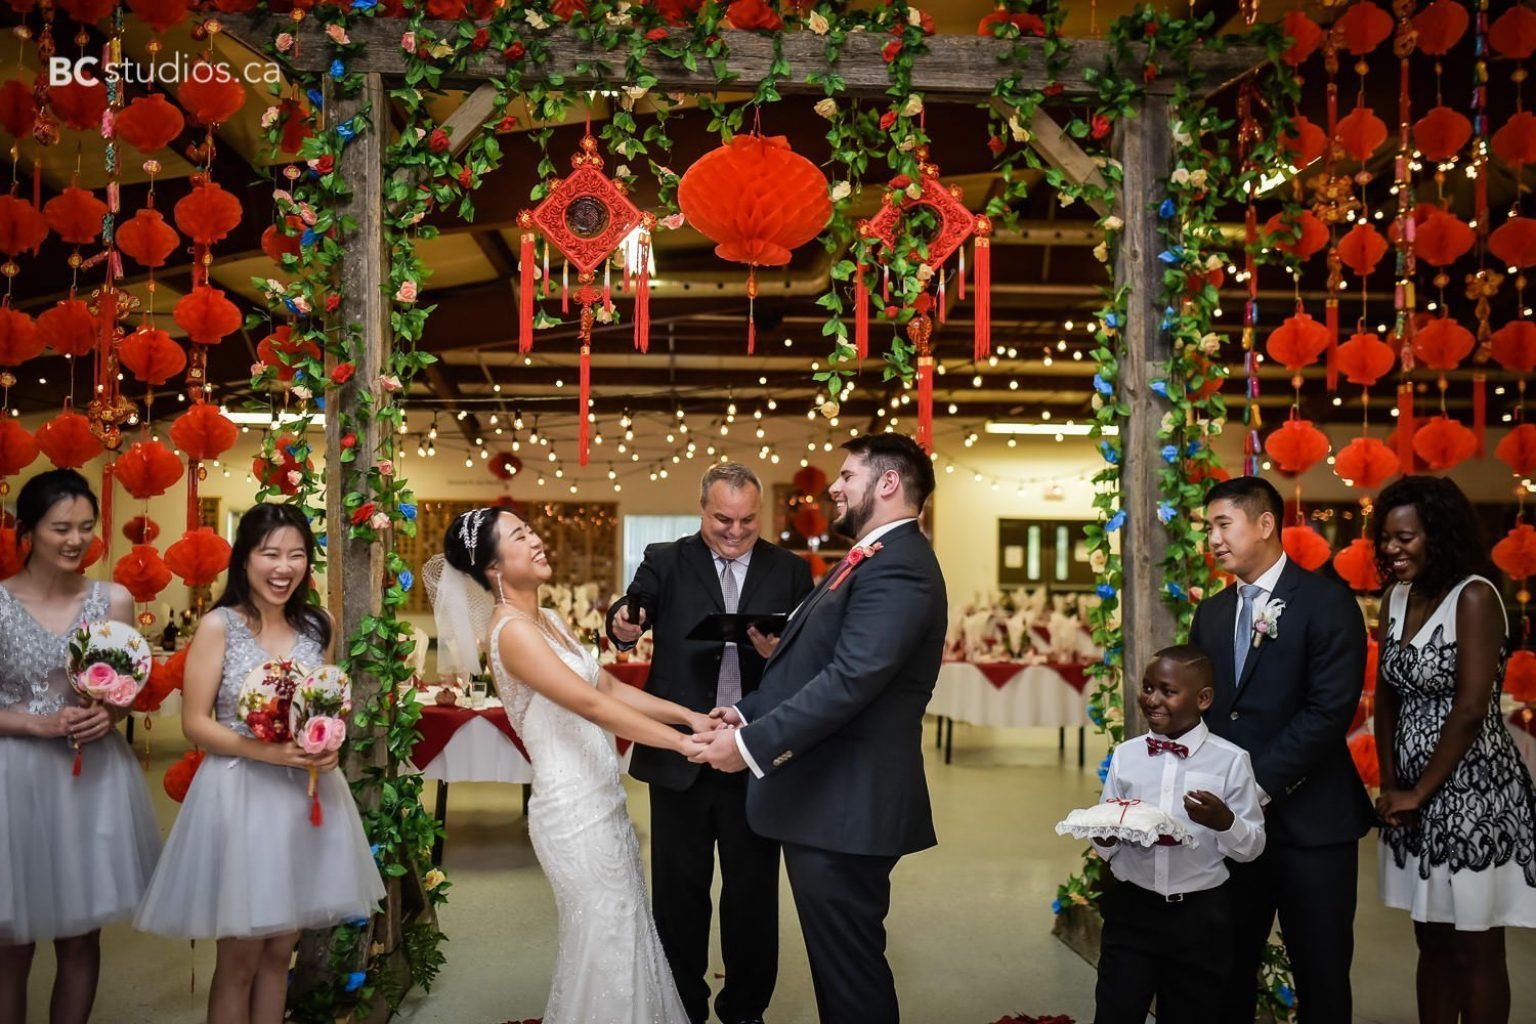 Schlamps wedding at edmonton oilfield technical society slideshow it was amazing to work with zhaoyi jordan on their wedding day and we cant be more excited to share their final images with them in the coming weeks junglespirit Image collections